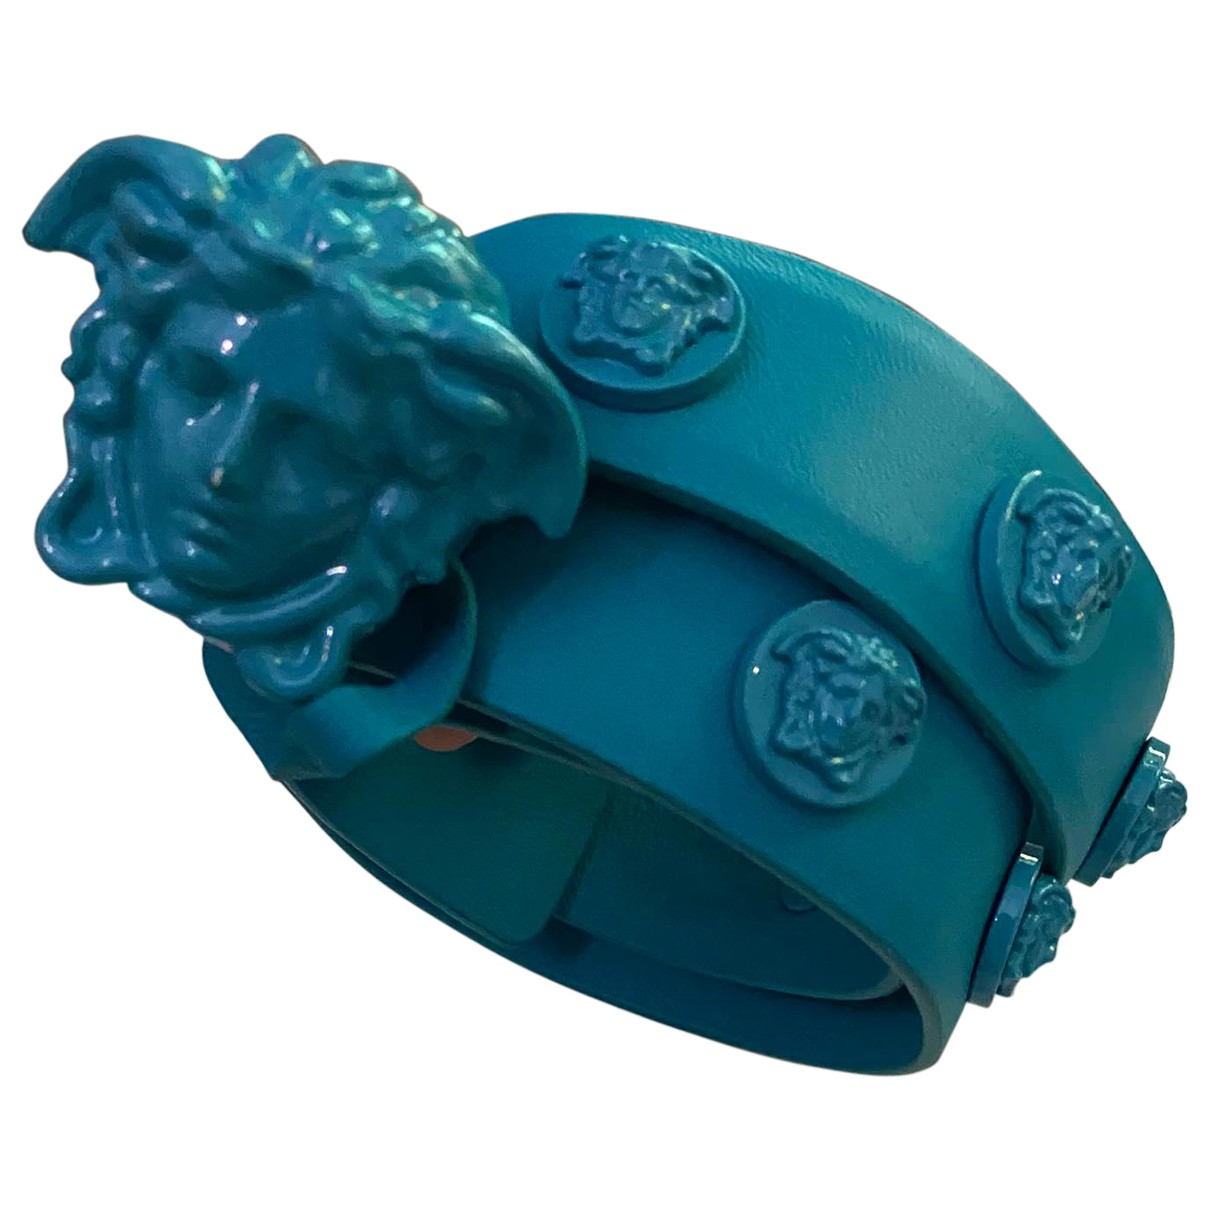 Versace N Turquoise Leather belt for Women 90 cm